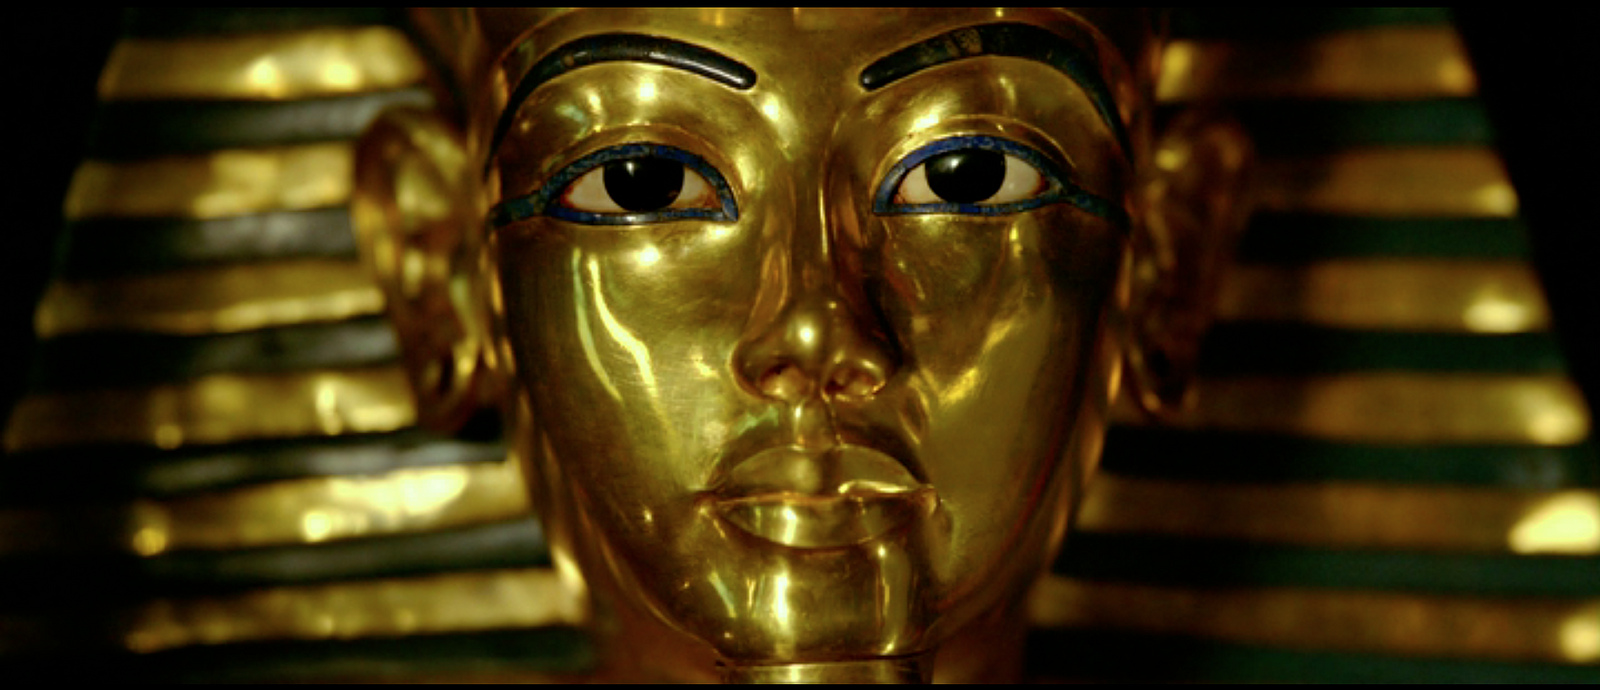 A close-up image of King Tutankhamen's burial mask. It is made out of gold. The only features on the face that are not gold are two thin black eyebrows and two large eyes with iris and pupils colored black.